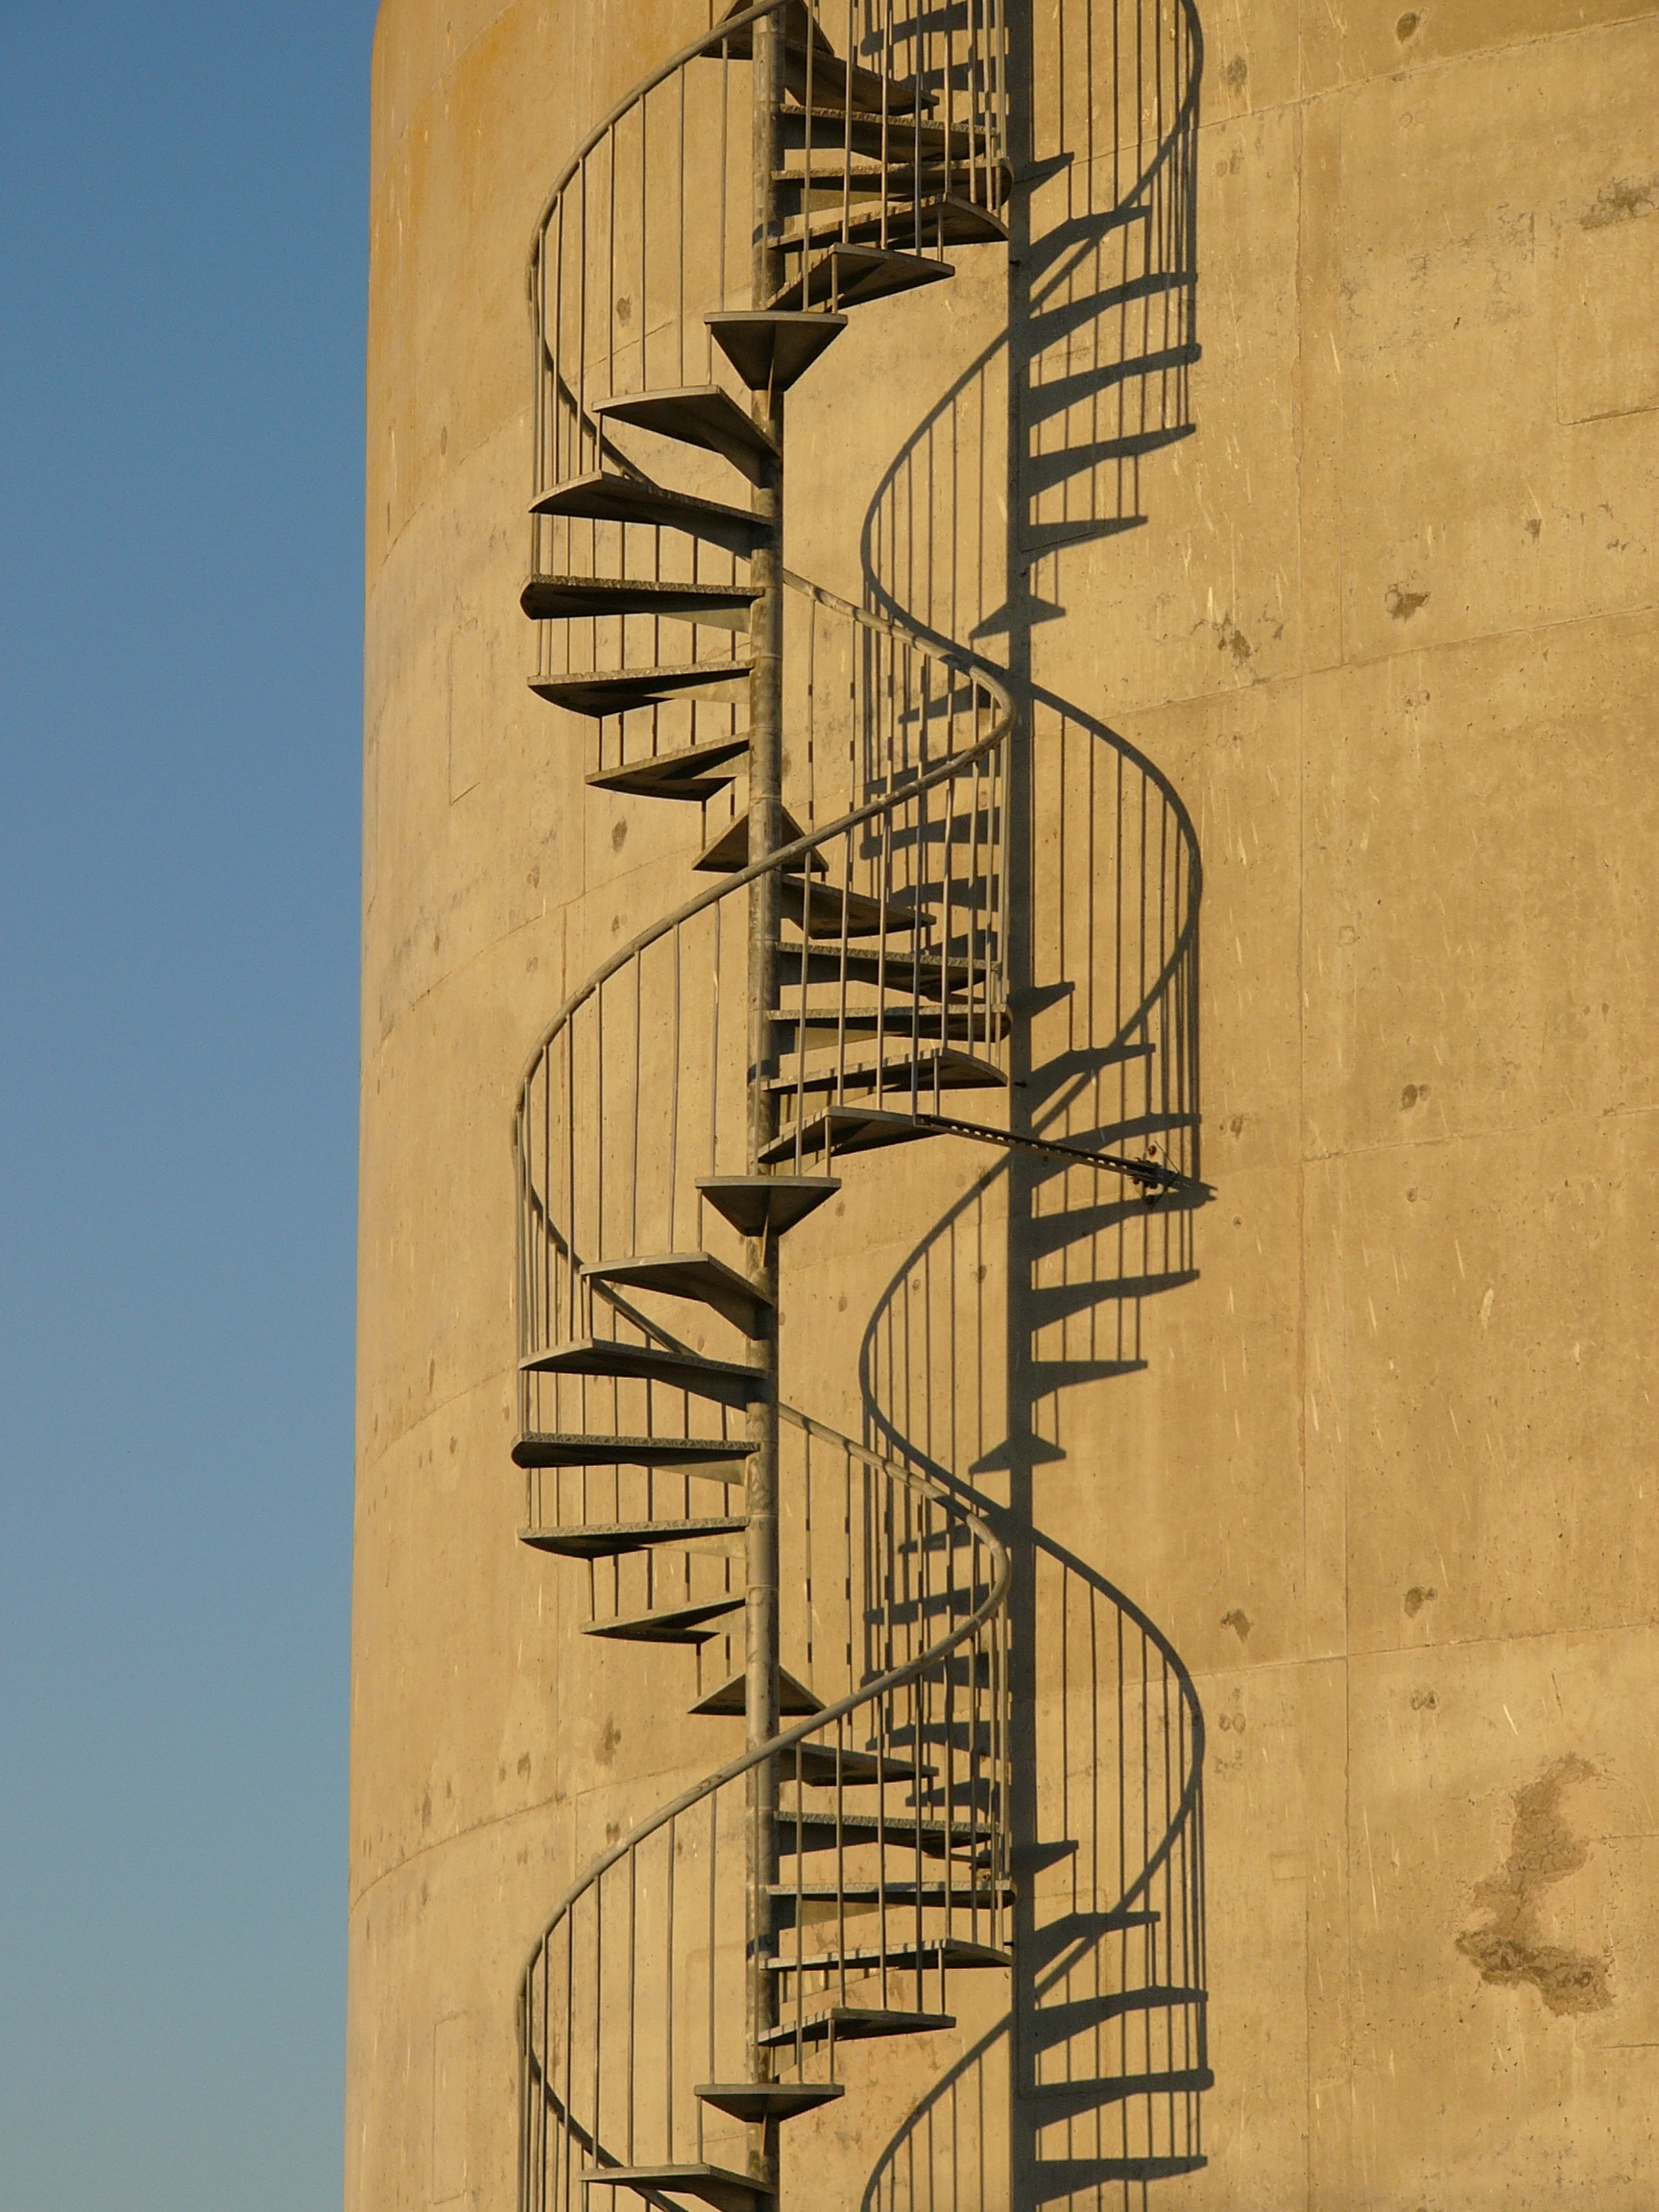 Double Helix Stairs, Wikimedia